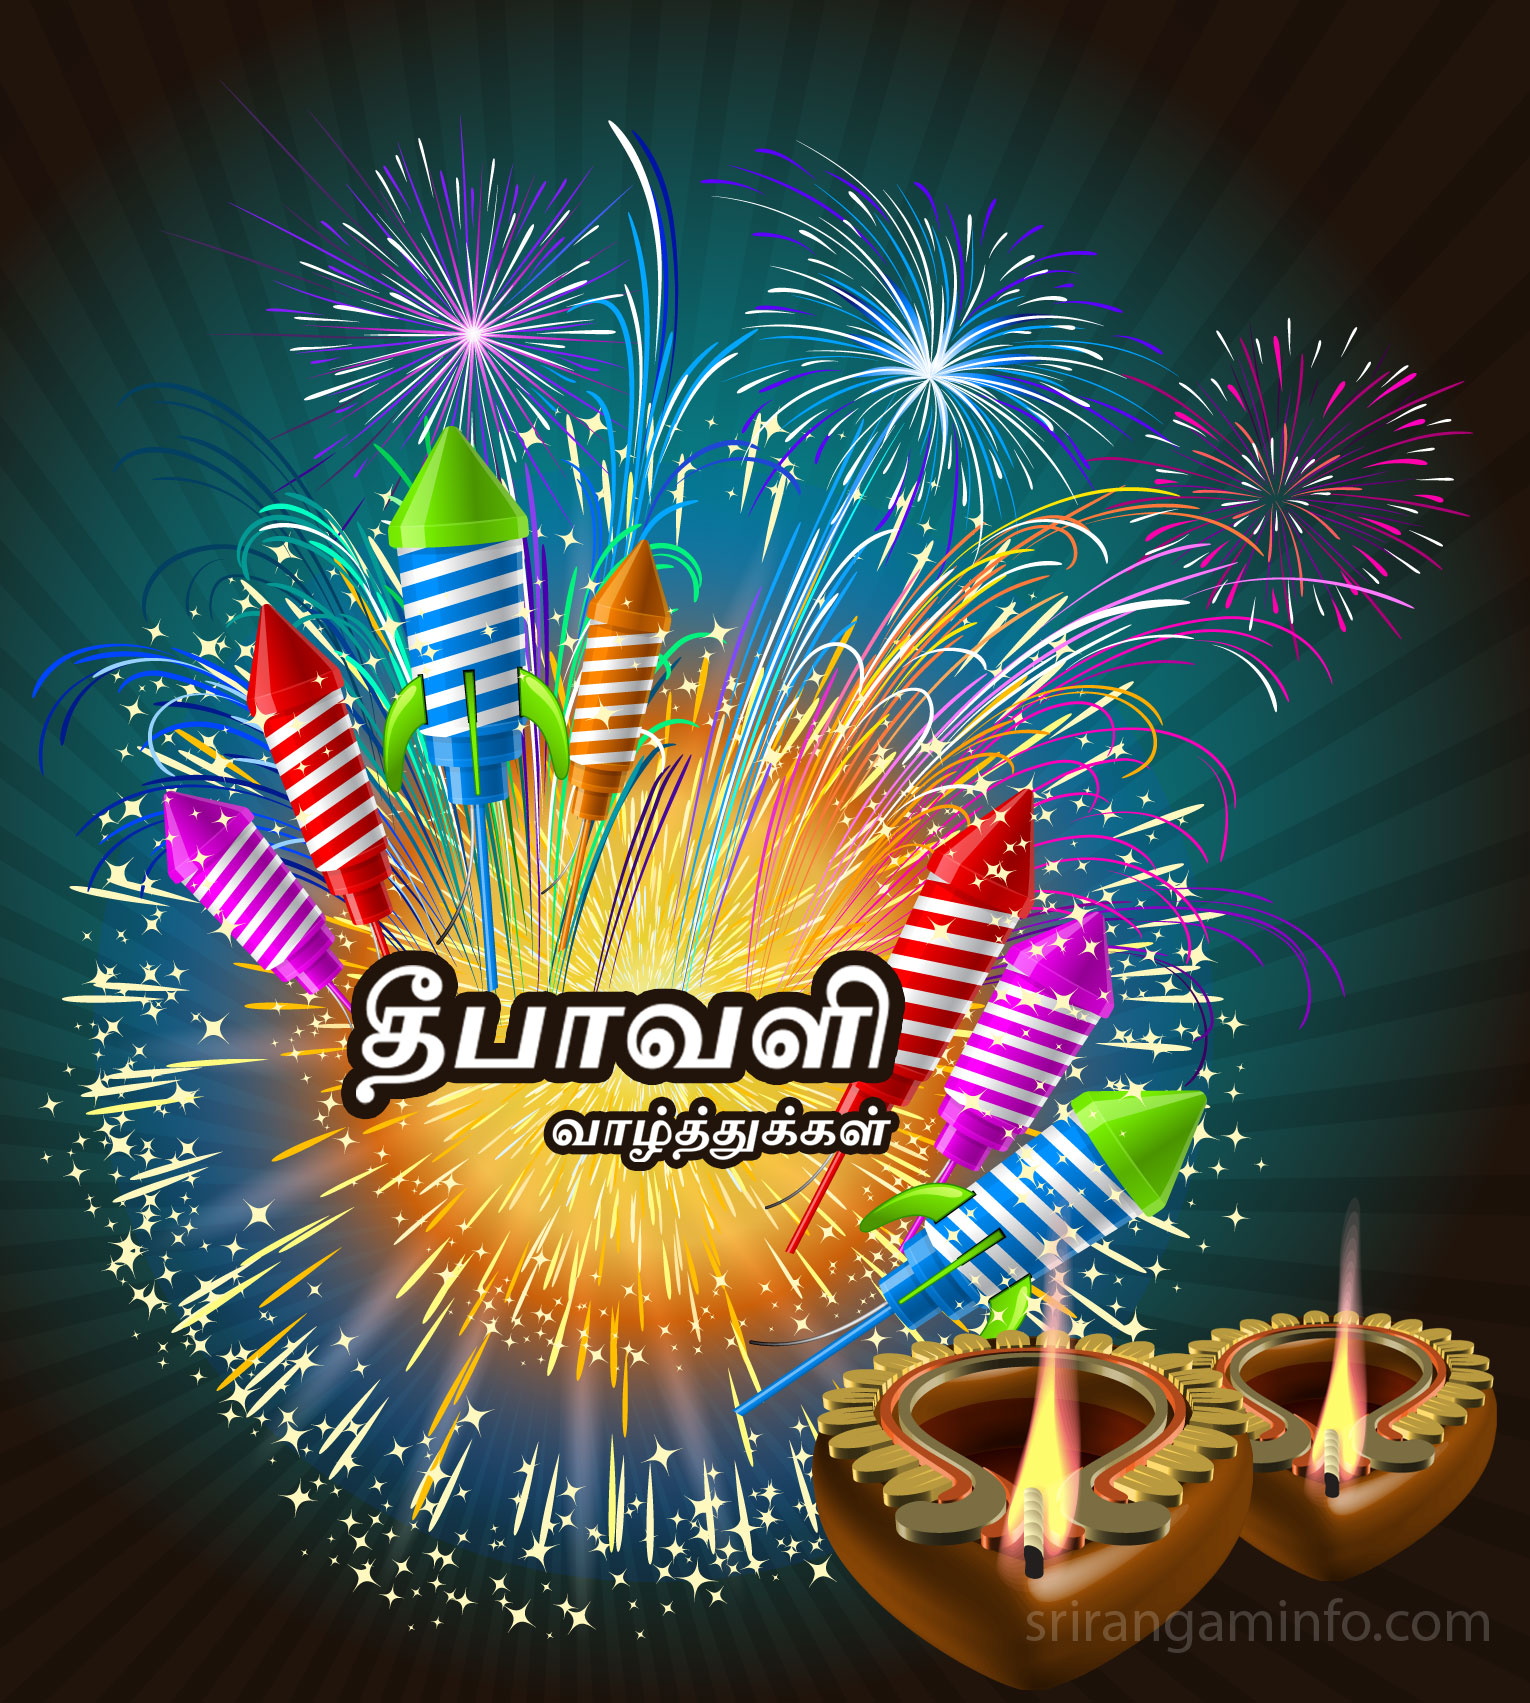 Deepavali greetings in tamil 2017 deepavali greetings tamil happy diwali in tamils m4hsunfo